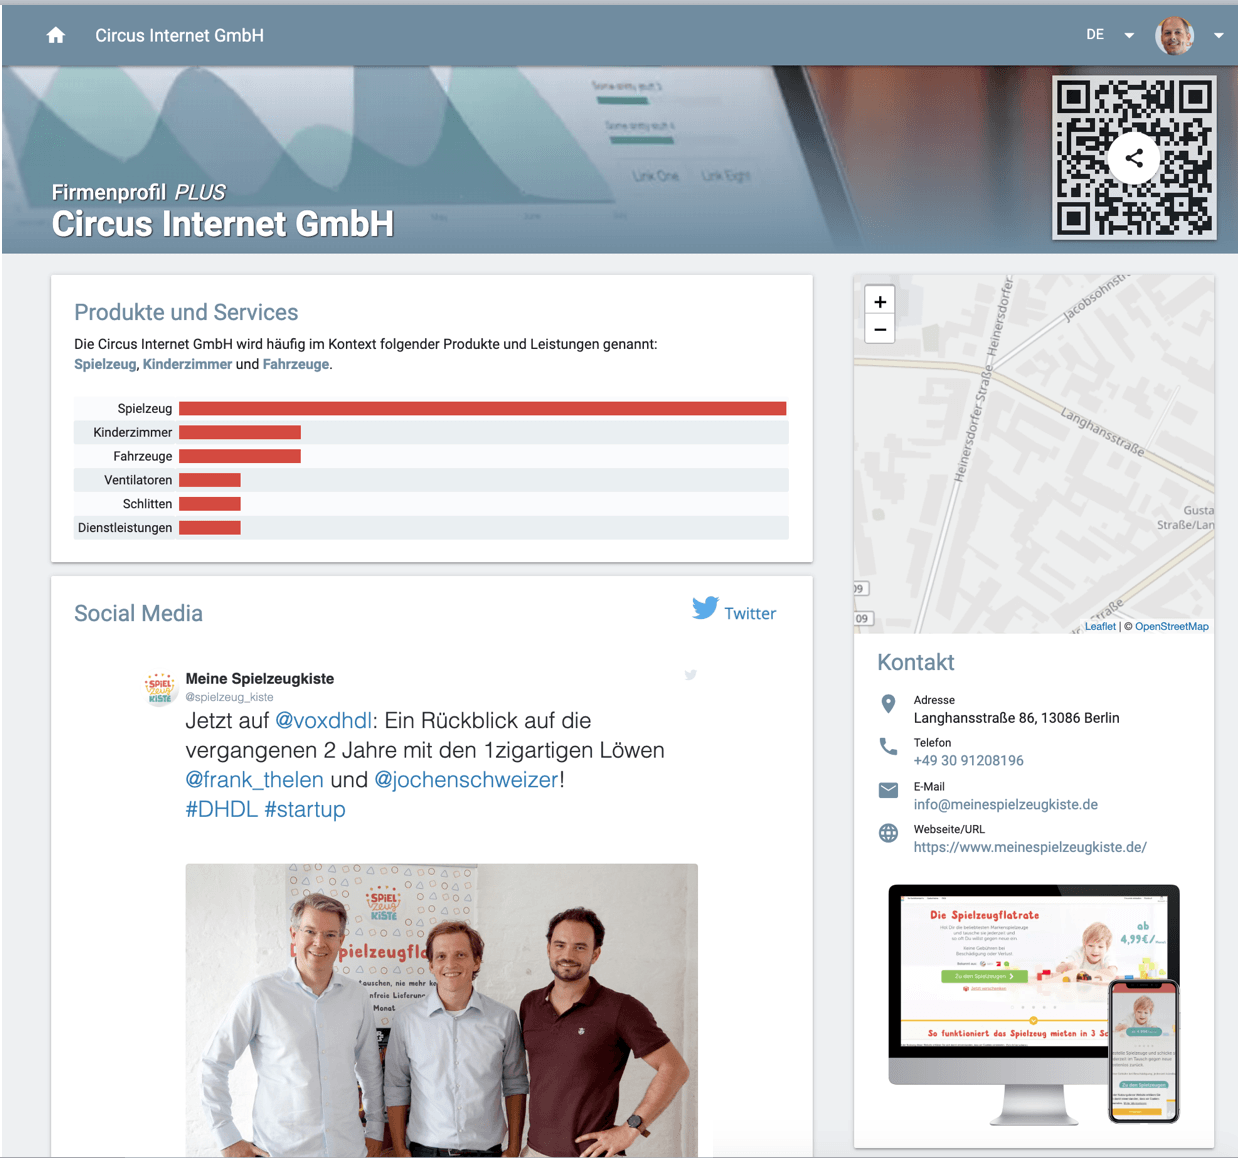 Social media posts in the company profile of the startup Circus Internet